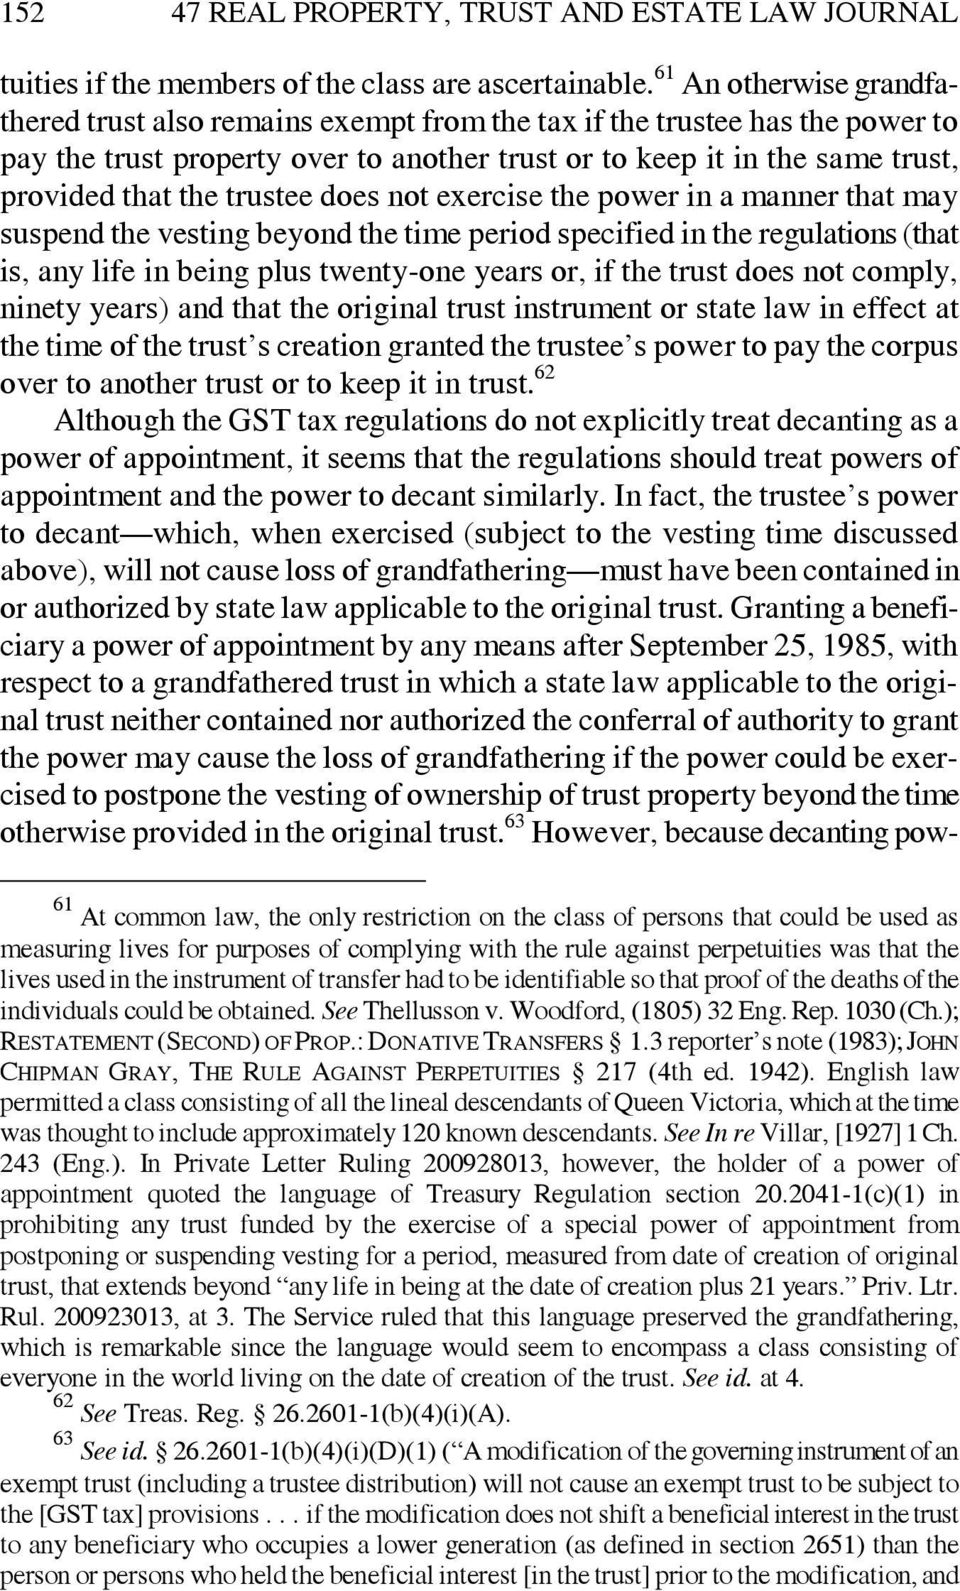 trustee does not exercise the power in a manner that may suspend the vesting beyond the time period specified in the regulations (that is, any life in being plus twenty-one years or, if the trust